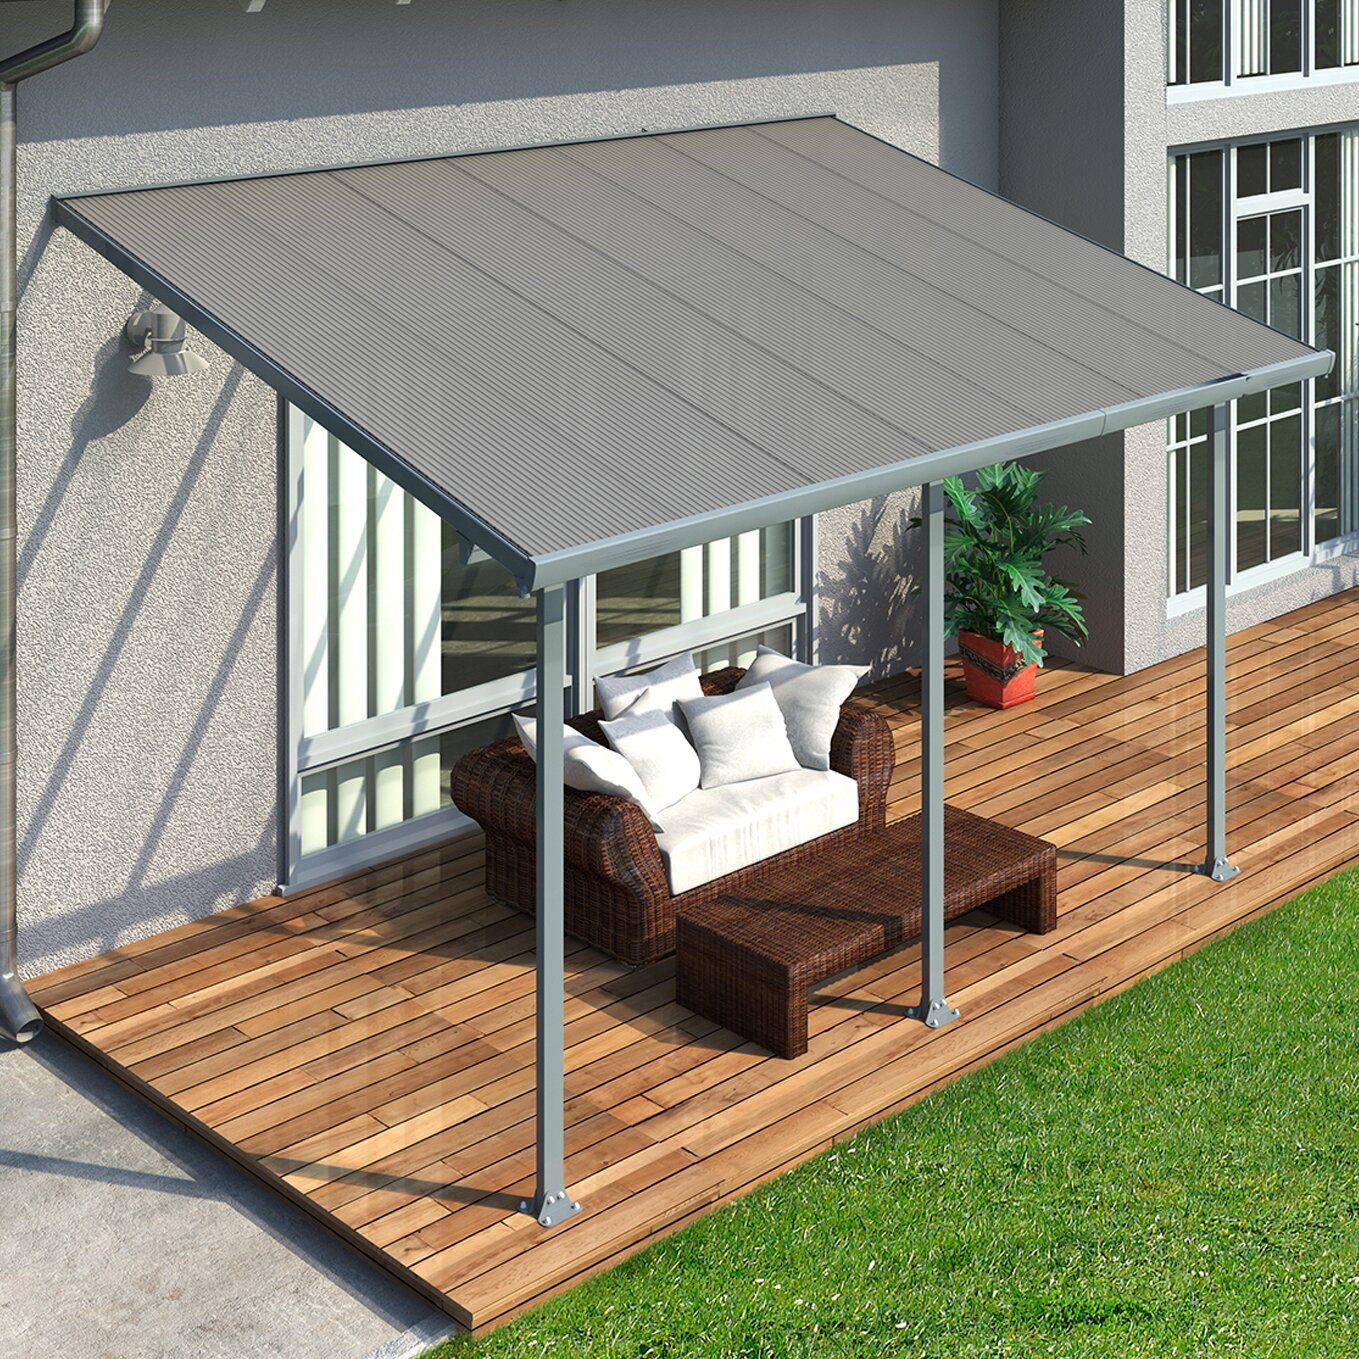 Palram Feria™ 10 ft. H x 14 ft. W x 10 ft. - Palram Feria™ 10 Ft. H X 14 Ft. W X 10 Ft. D Patio Cover Awning